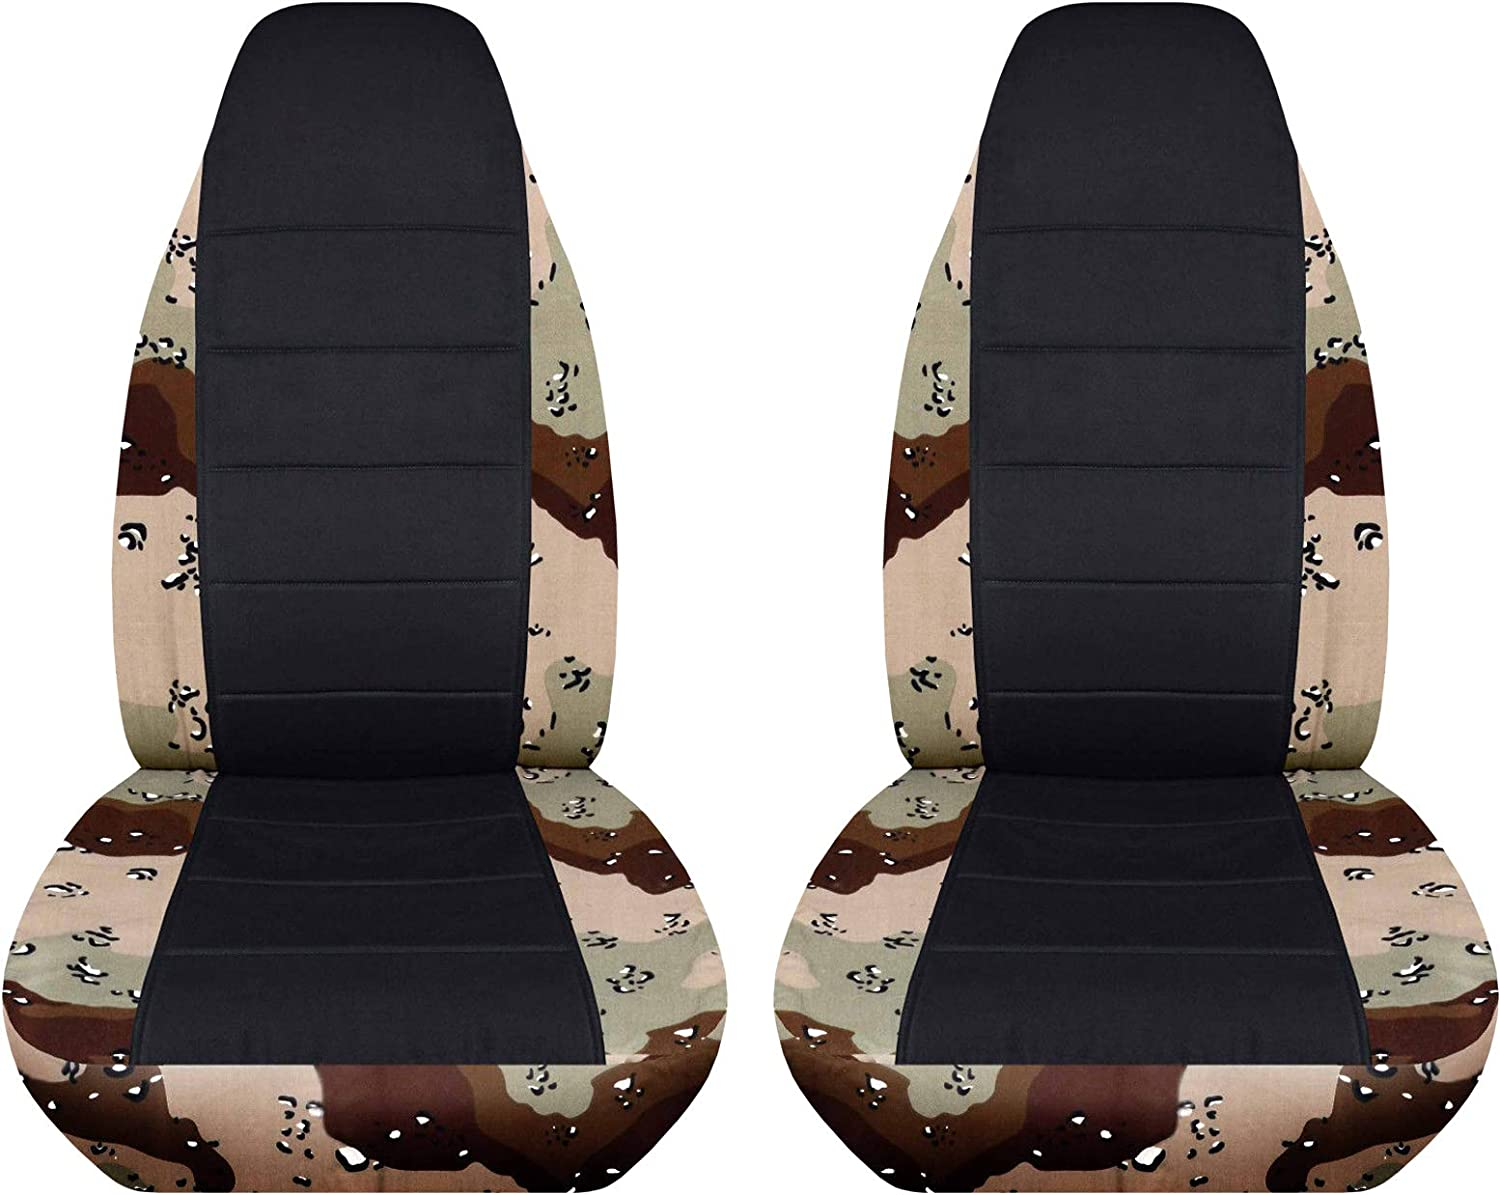 Totally Covers Camouflage & Black Car Seat Covers: Desert Storm Camo - Semi-Custom Fit - Front - Will Make Fit Any Car/Truck/Van/RV/SUV (22 Prints)